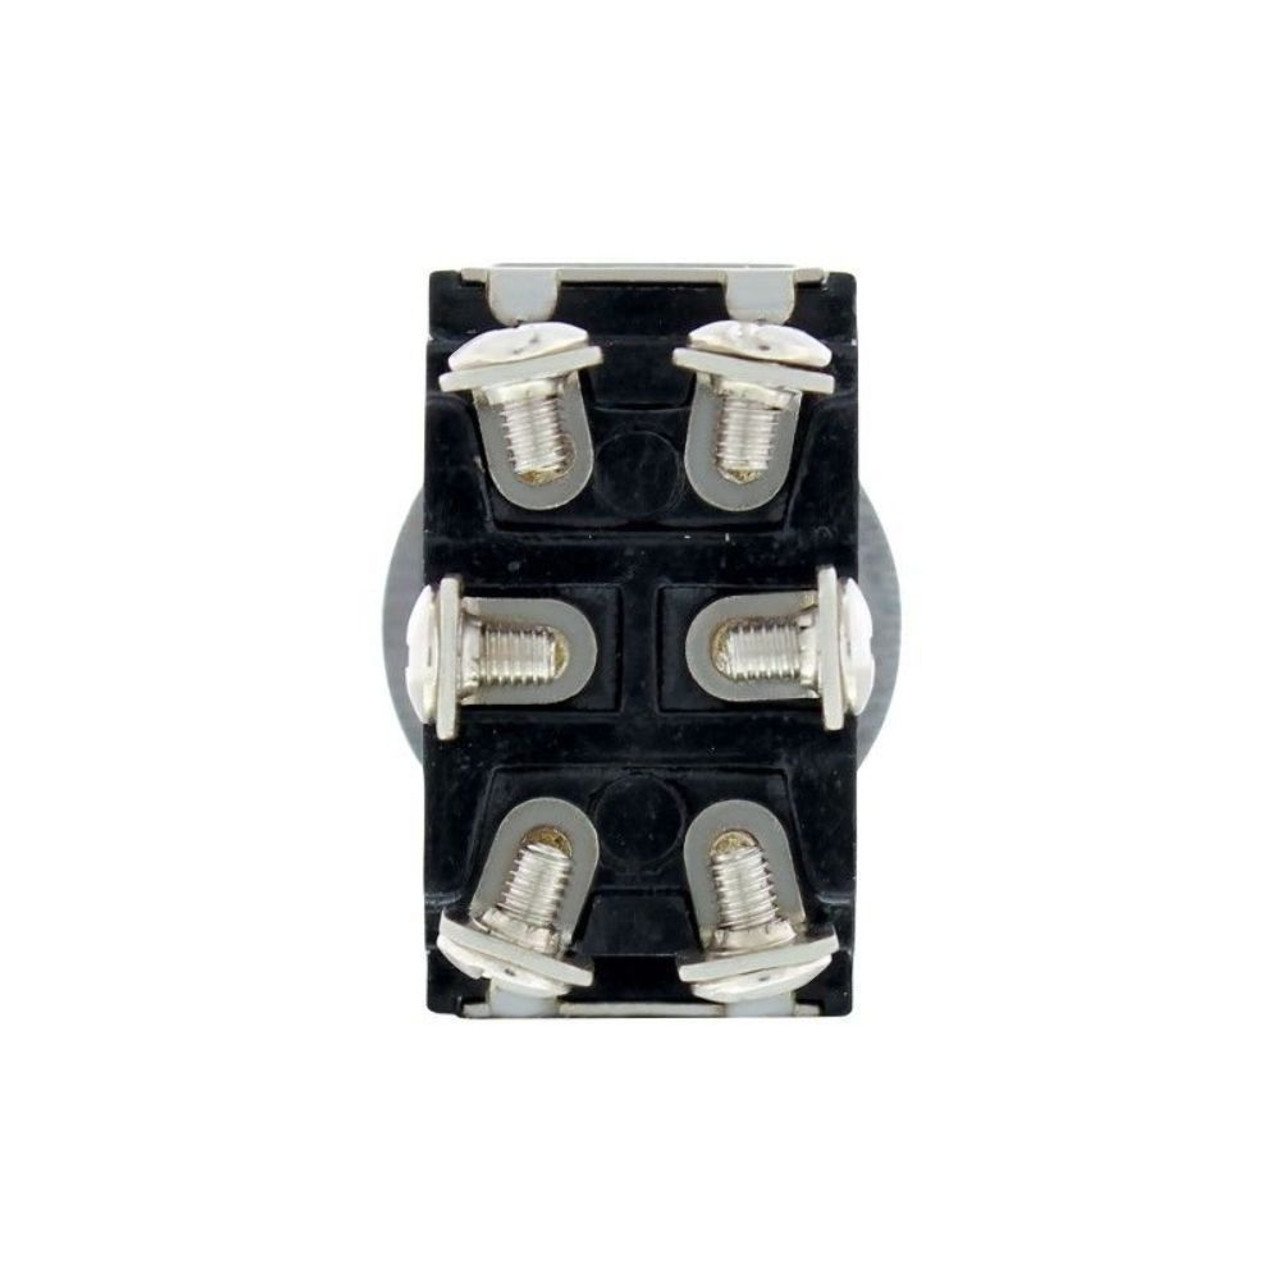 10 Amp - 125 Volts 6 Amp - 250 Vt - On-Off-On Toggle Switch w/ 6 Screw Terminals